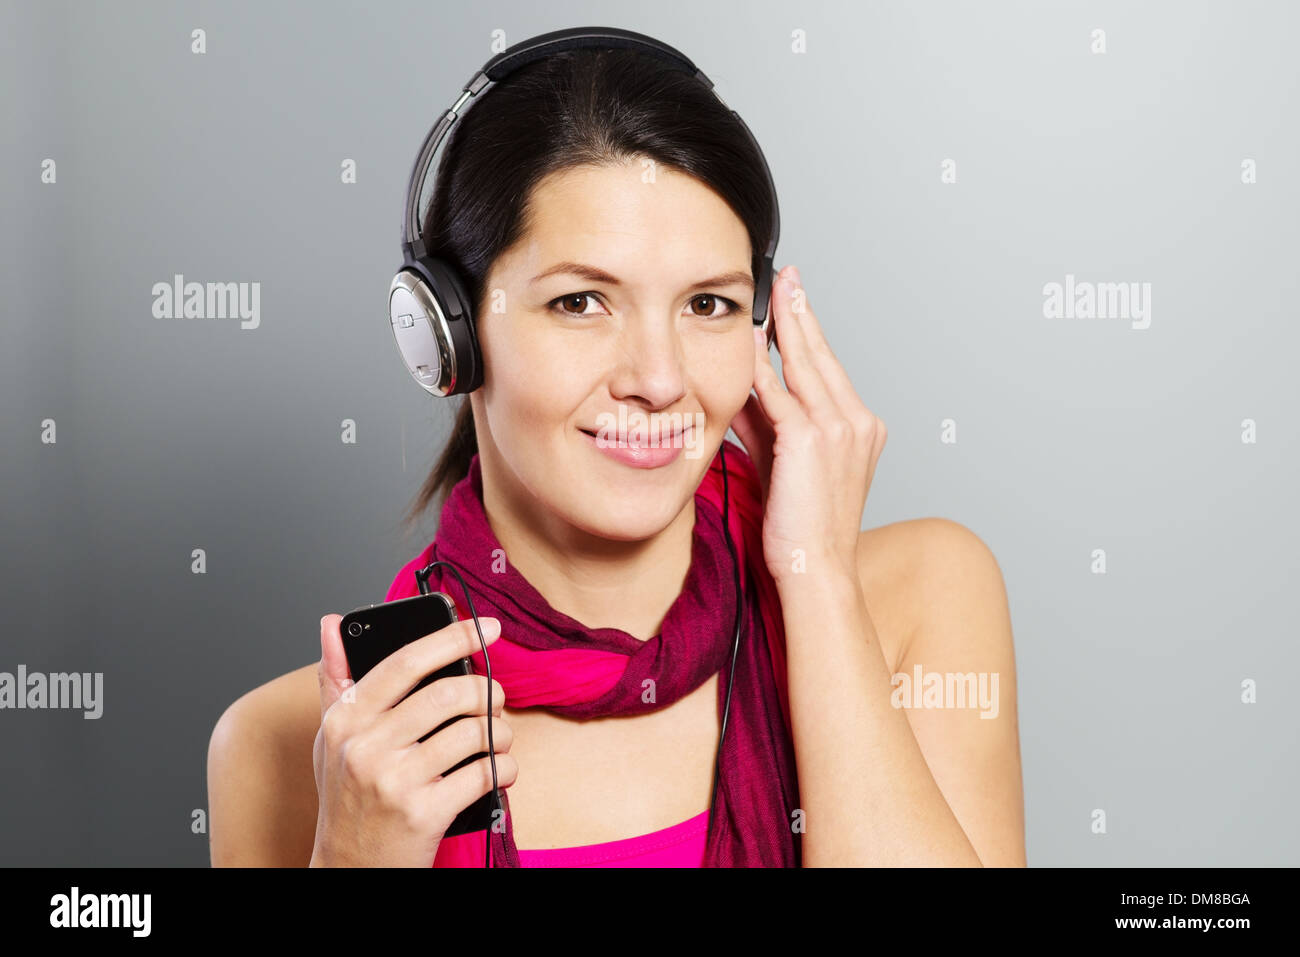 Beautiful woman in a magenta summer dress listening to music with her headphones - Stock Image